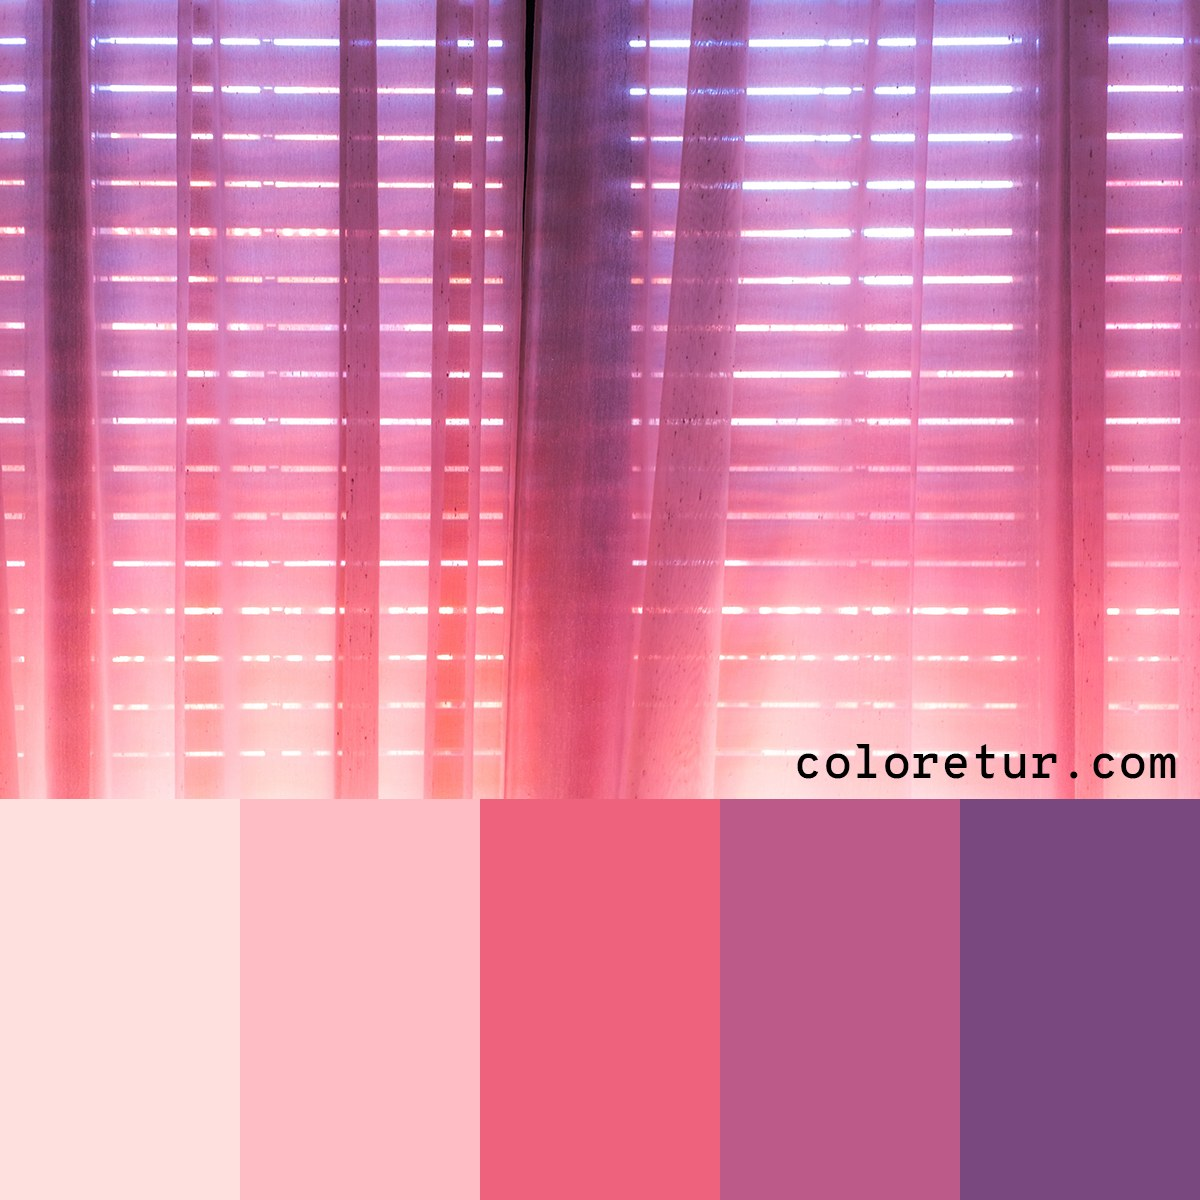 The vibrant colours of dawn bring warmth and brightness to this glowing palette